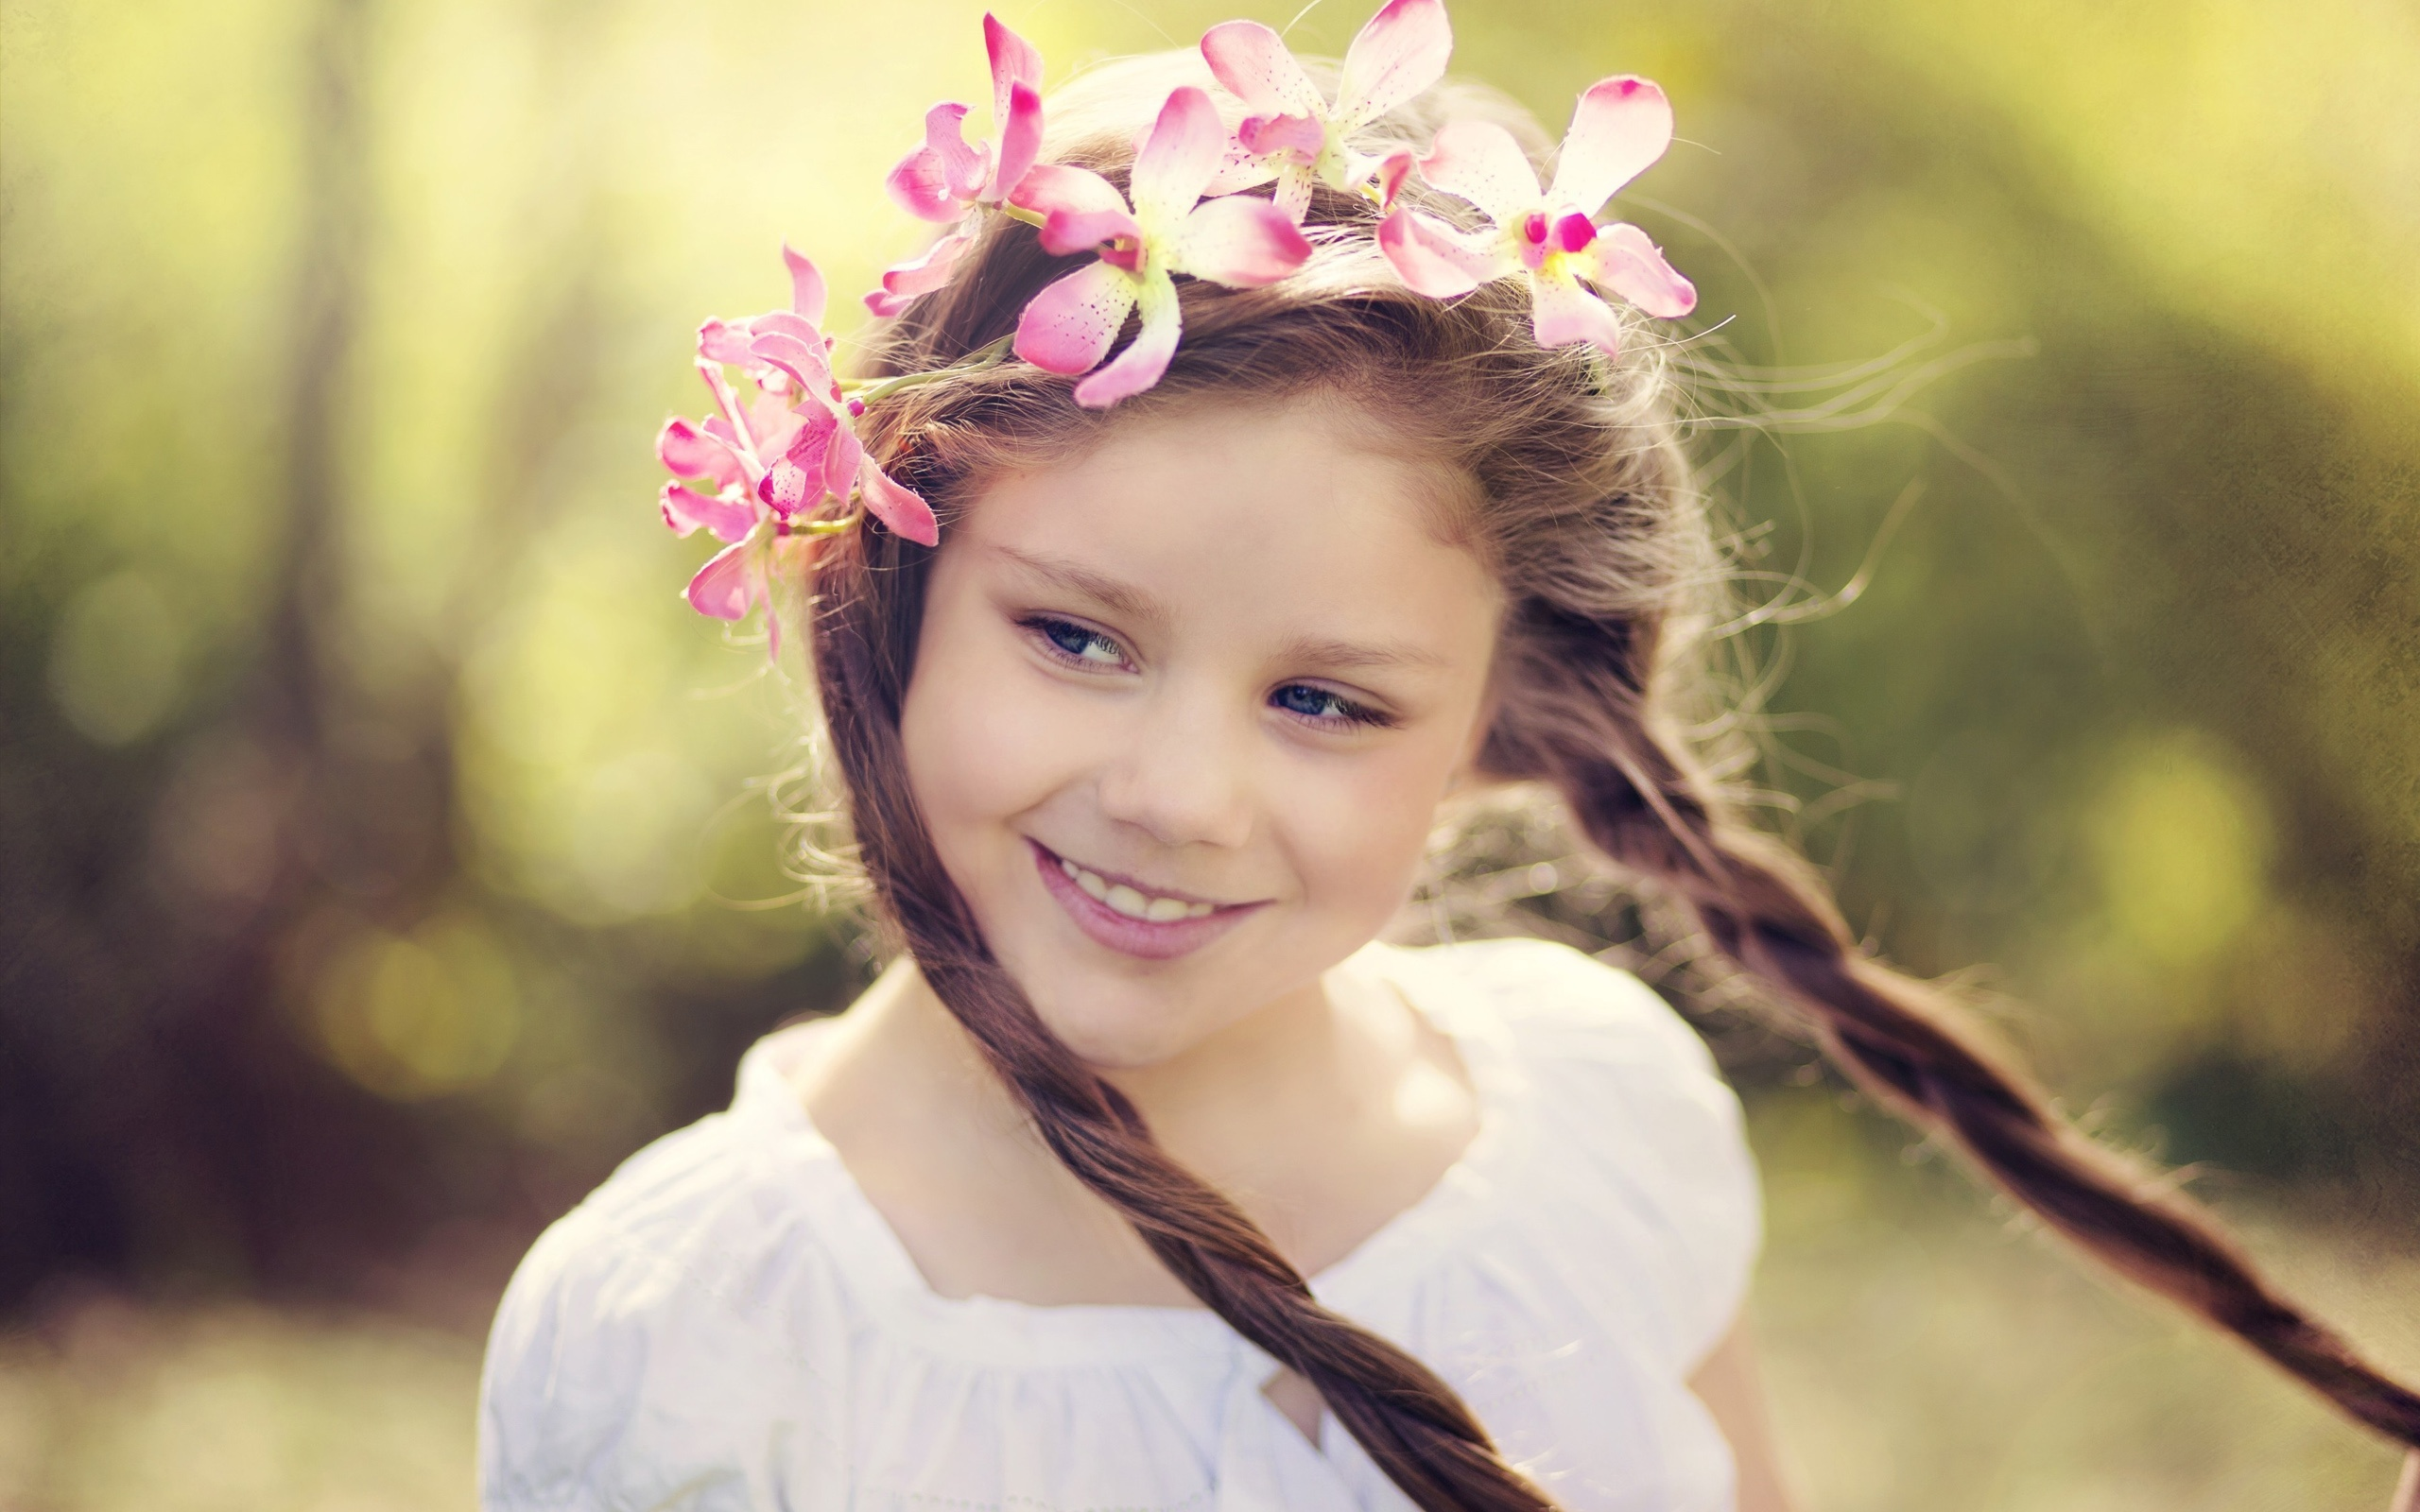 Wallpaper smile little girl flower wreath 2560x1600 hd picture image download this wallpaper izmirmasajfo